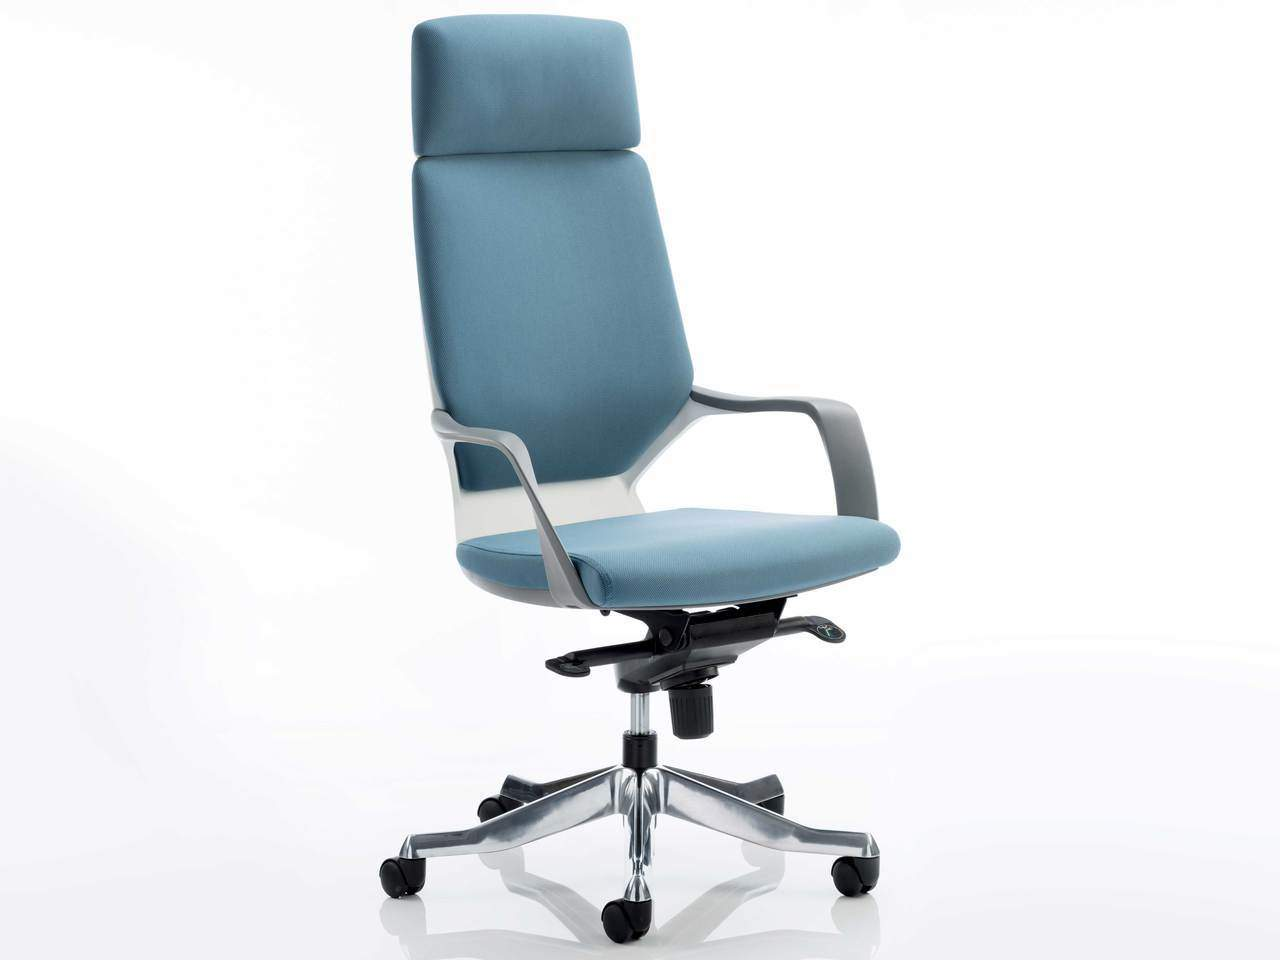 blue chair jam remy side review fabric office zef